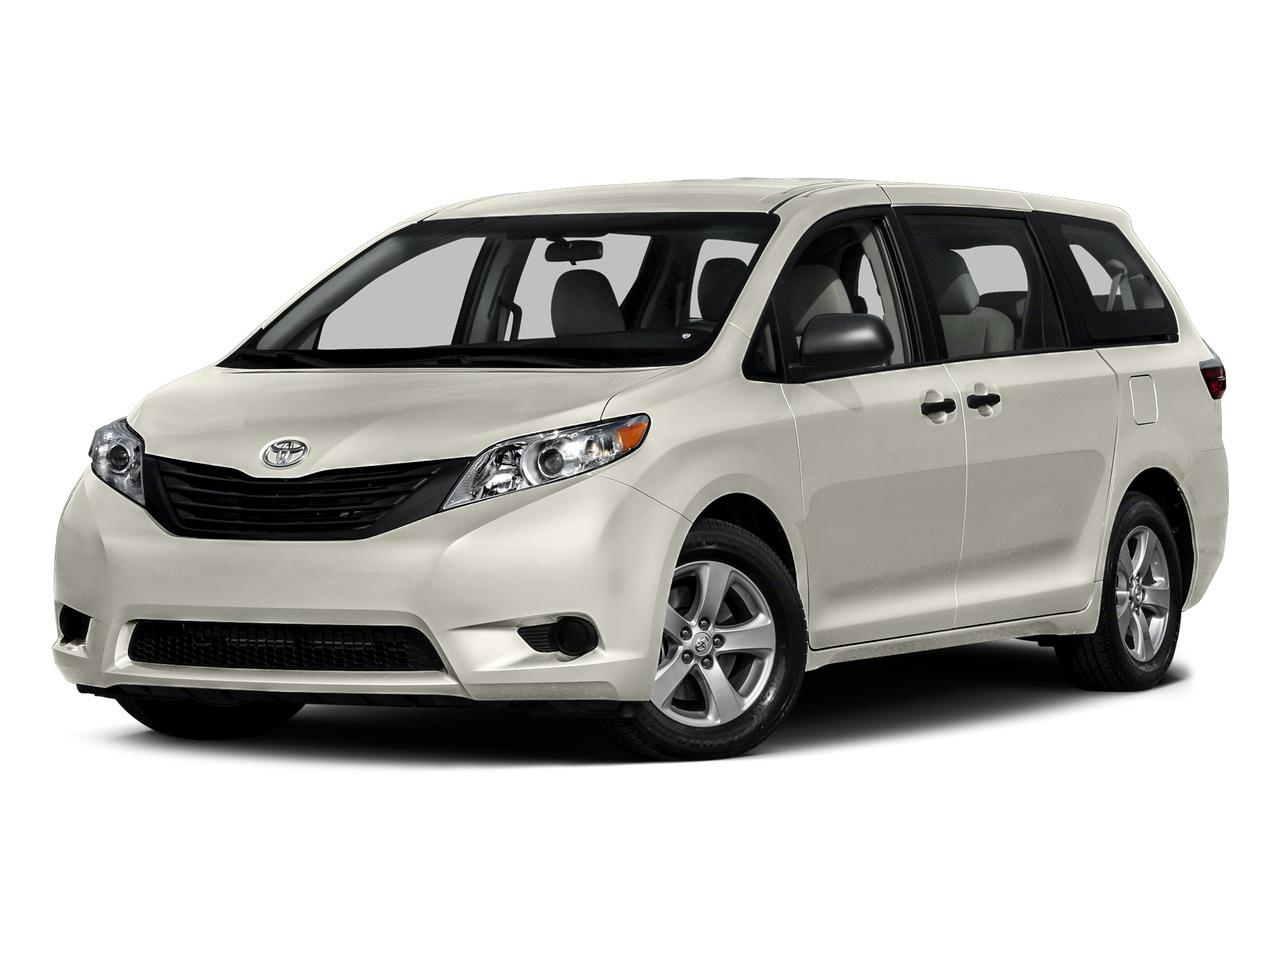 2015 Toyota Sienna Vehicle Photo in OKLAHOMA CITY, OK 73131